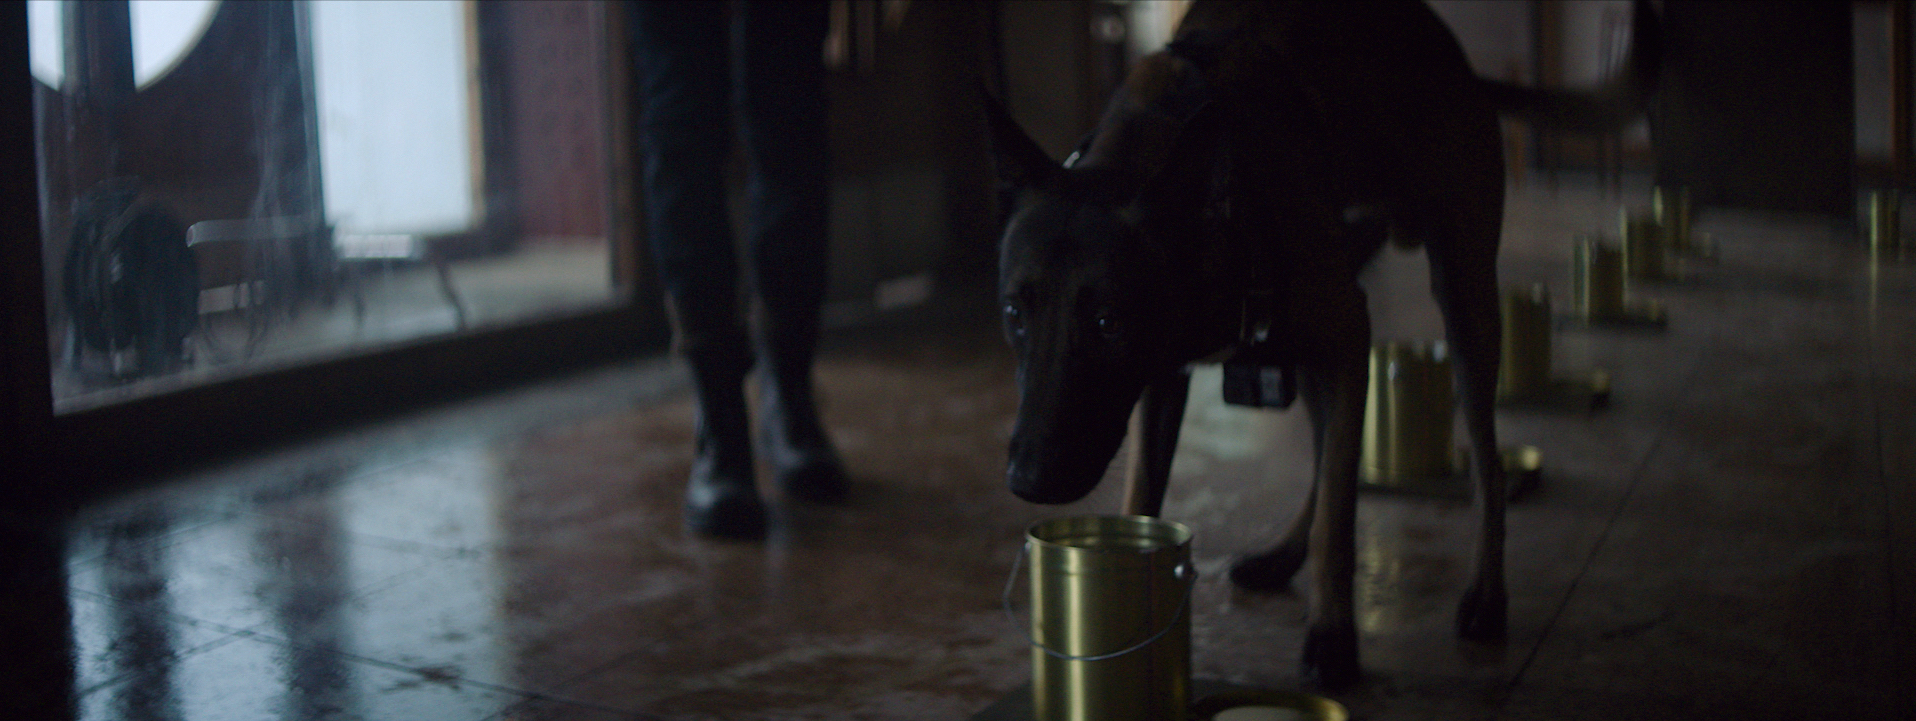 DOGS - ALL FOOTAGE.00_04_30_06.Still040.jpg